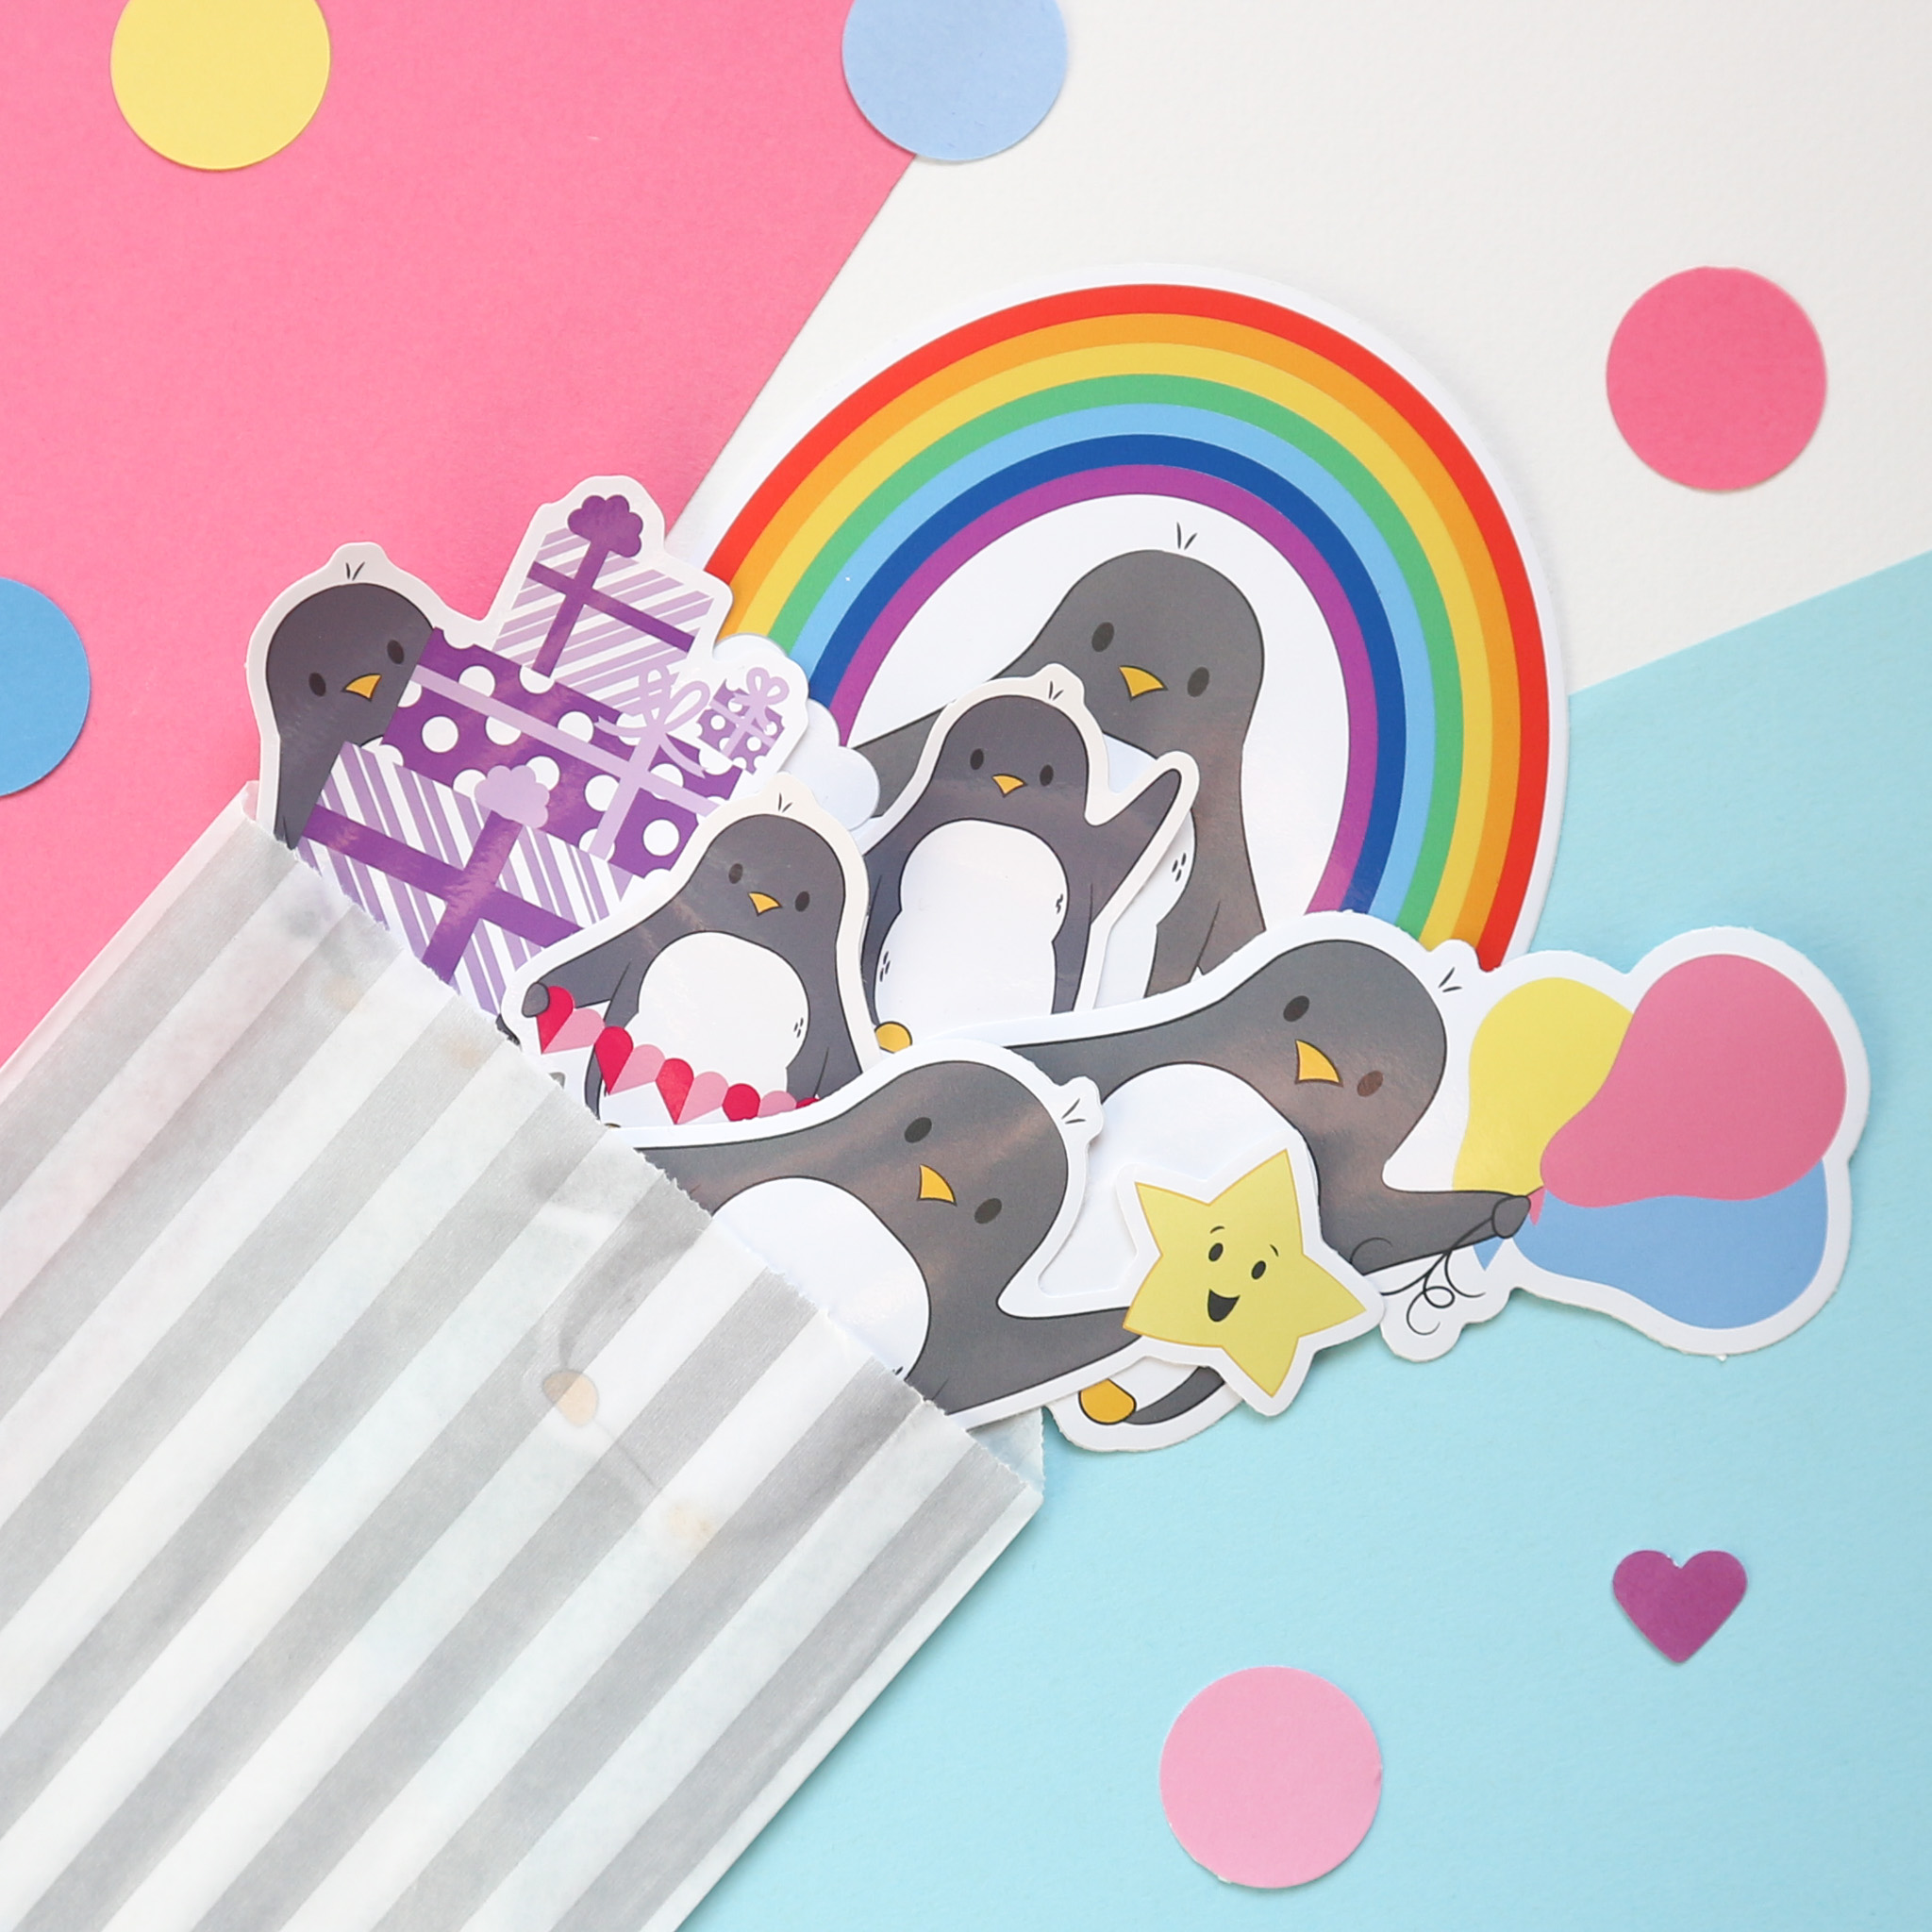 A group of colourful and cute penguin stickers are peeking out of a striped paper envelope. They are sitting against a pink, white and blue background surrounded by colourful confetti.